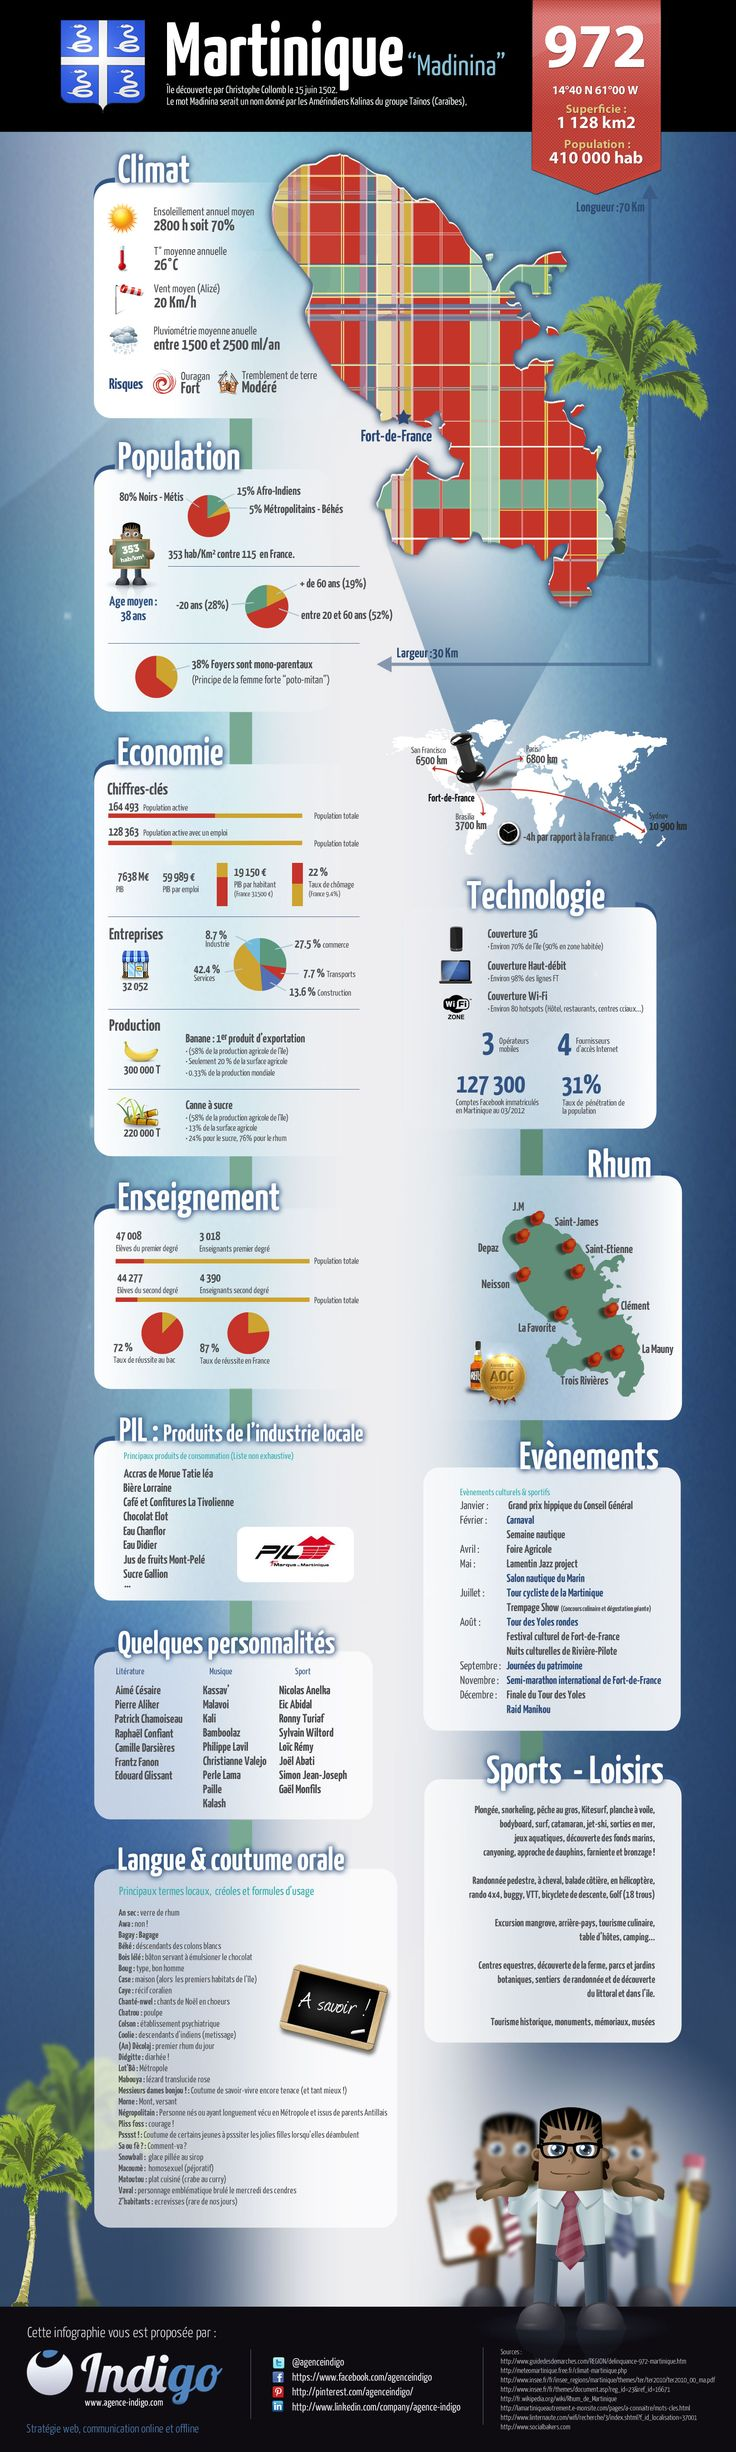 FinneytownDevoirs - infographie Martinique